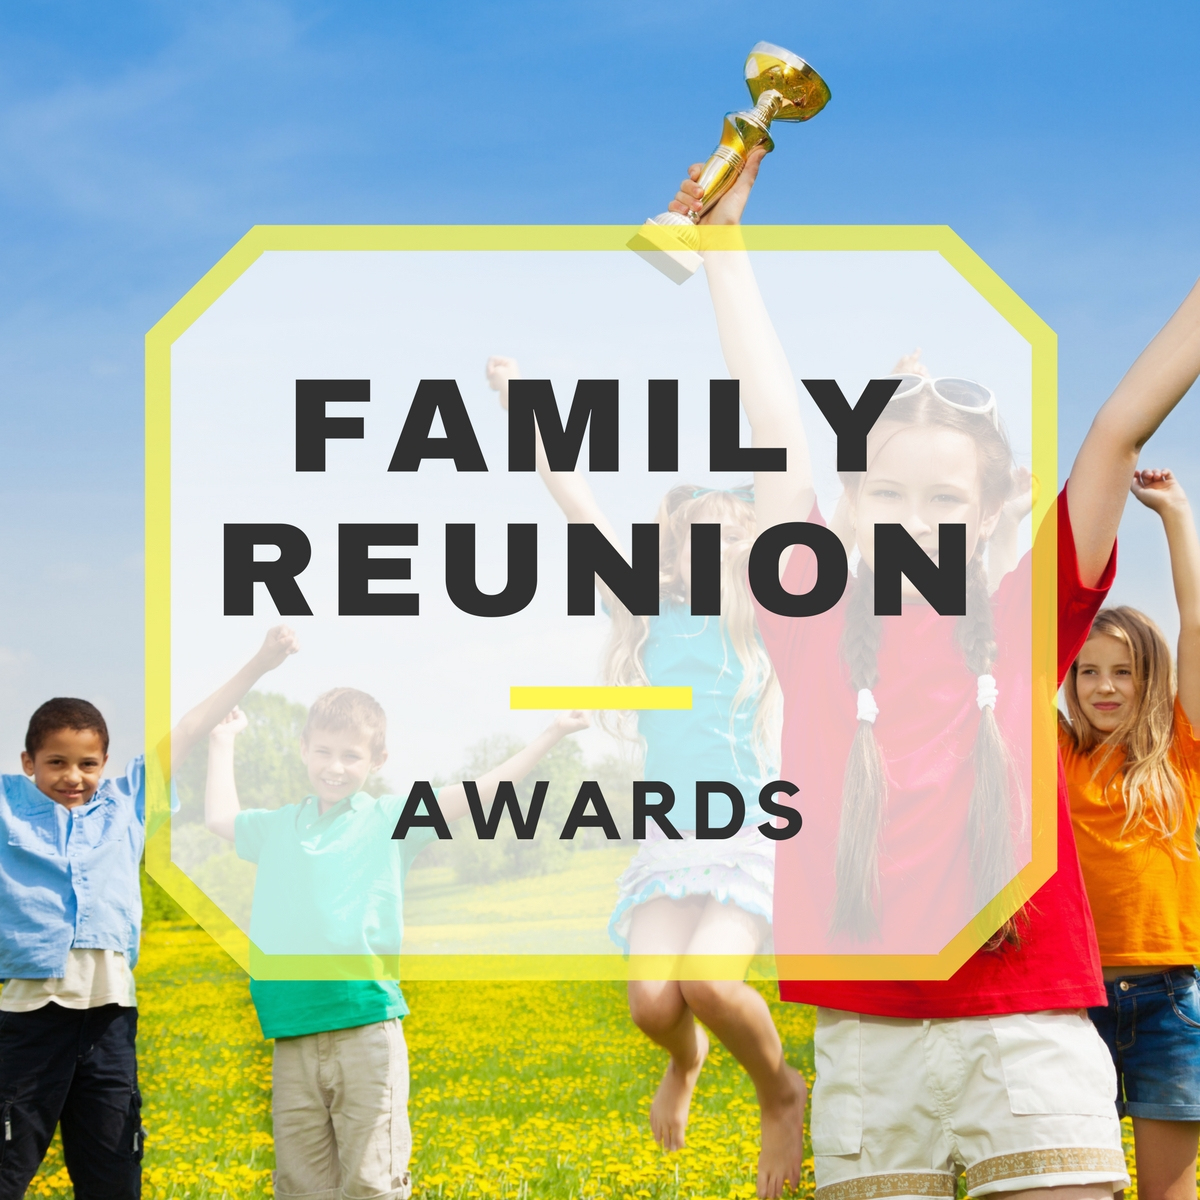 Family Reunion Awards - Free Printable Family Reunion Awards